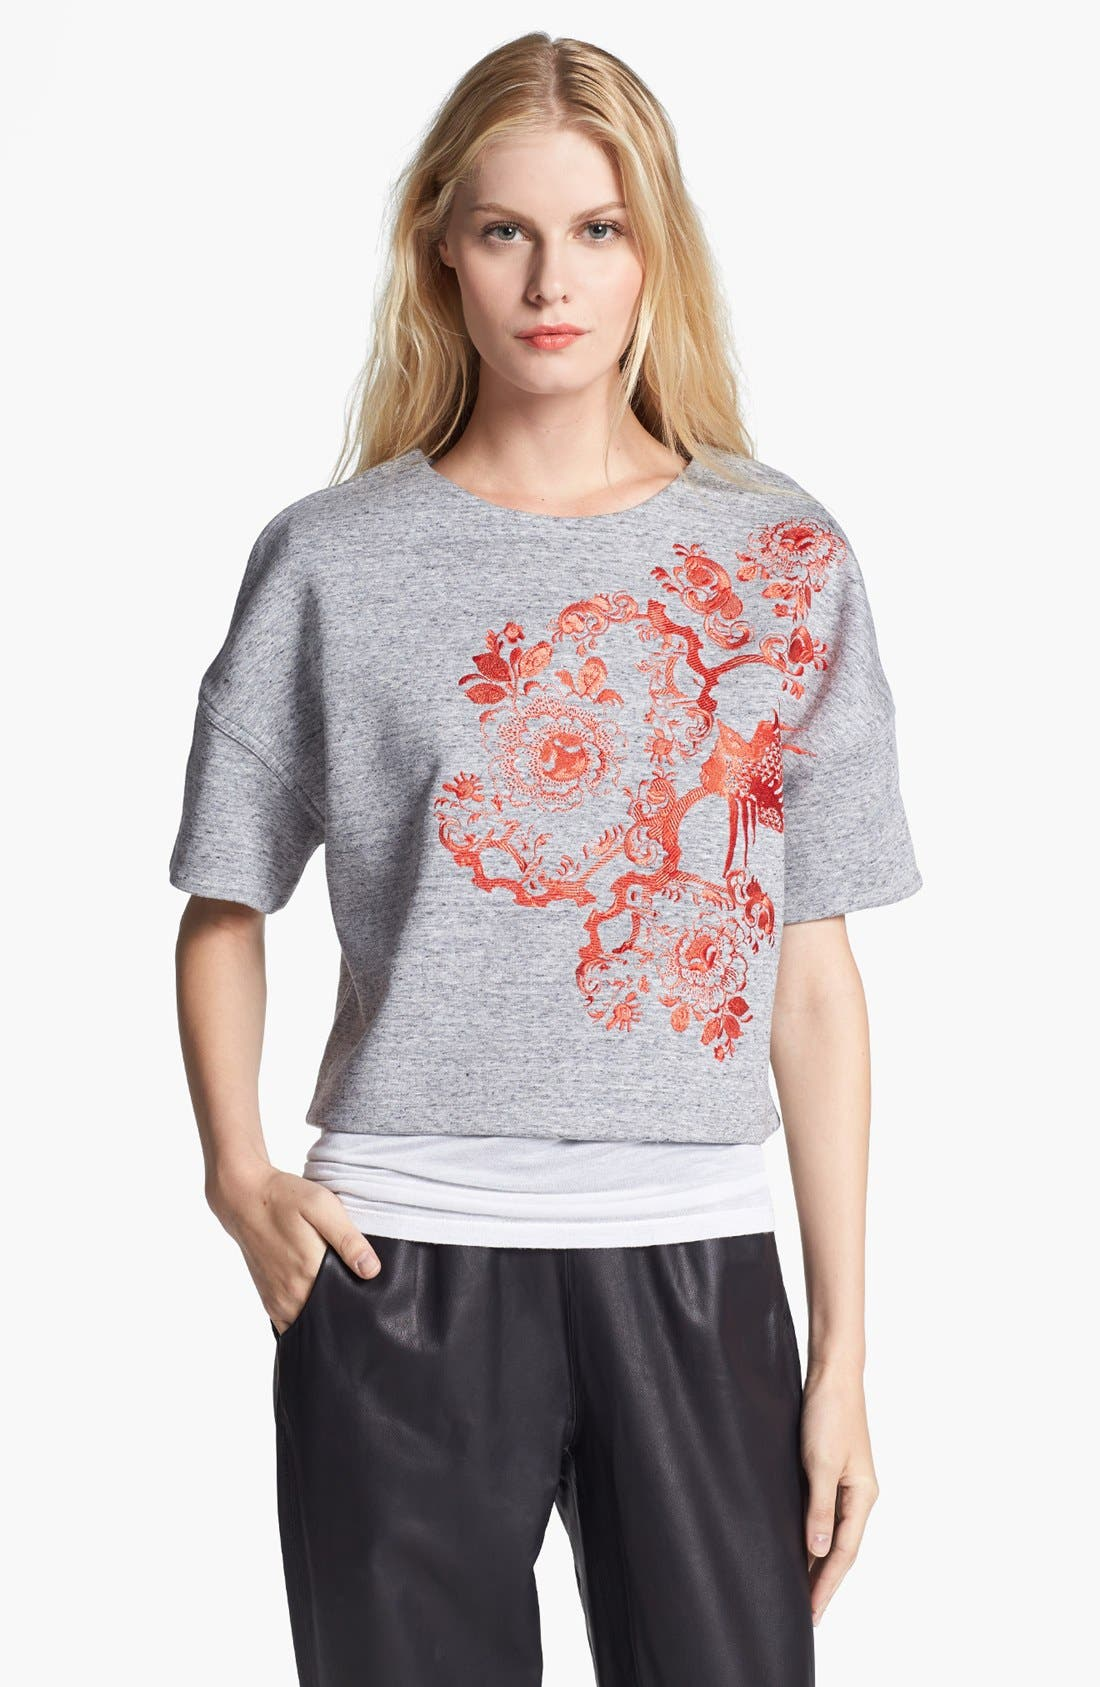 Alternate Image 1 Selected - Elizabeth and James 'Mira' Short Sleeve Sweatshirt